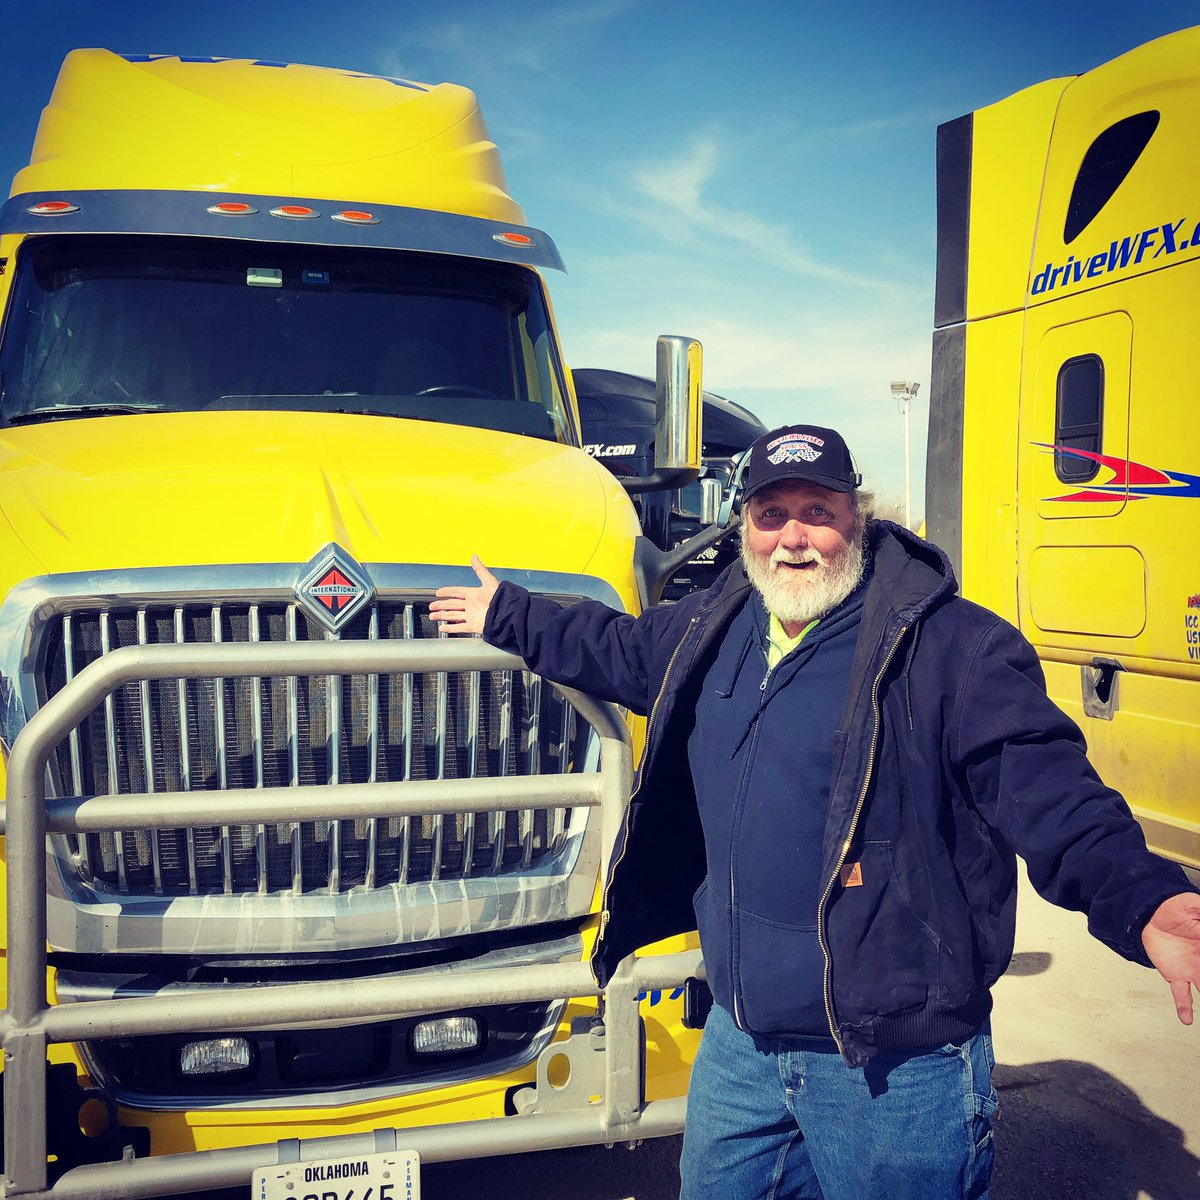 Jimmie Sr. was pretty excited about his newly leased International LT. His son Jimmie Jr. started contracting with us a few weeks ago. Welcome to the team! . . #otrtrucker #cdldriver #internationaltrucks #drivewfx #fatherandson – at Western Flyer Express Trucking Company